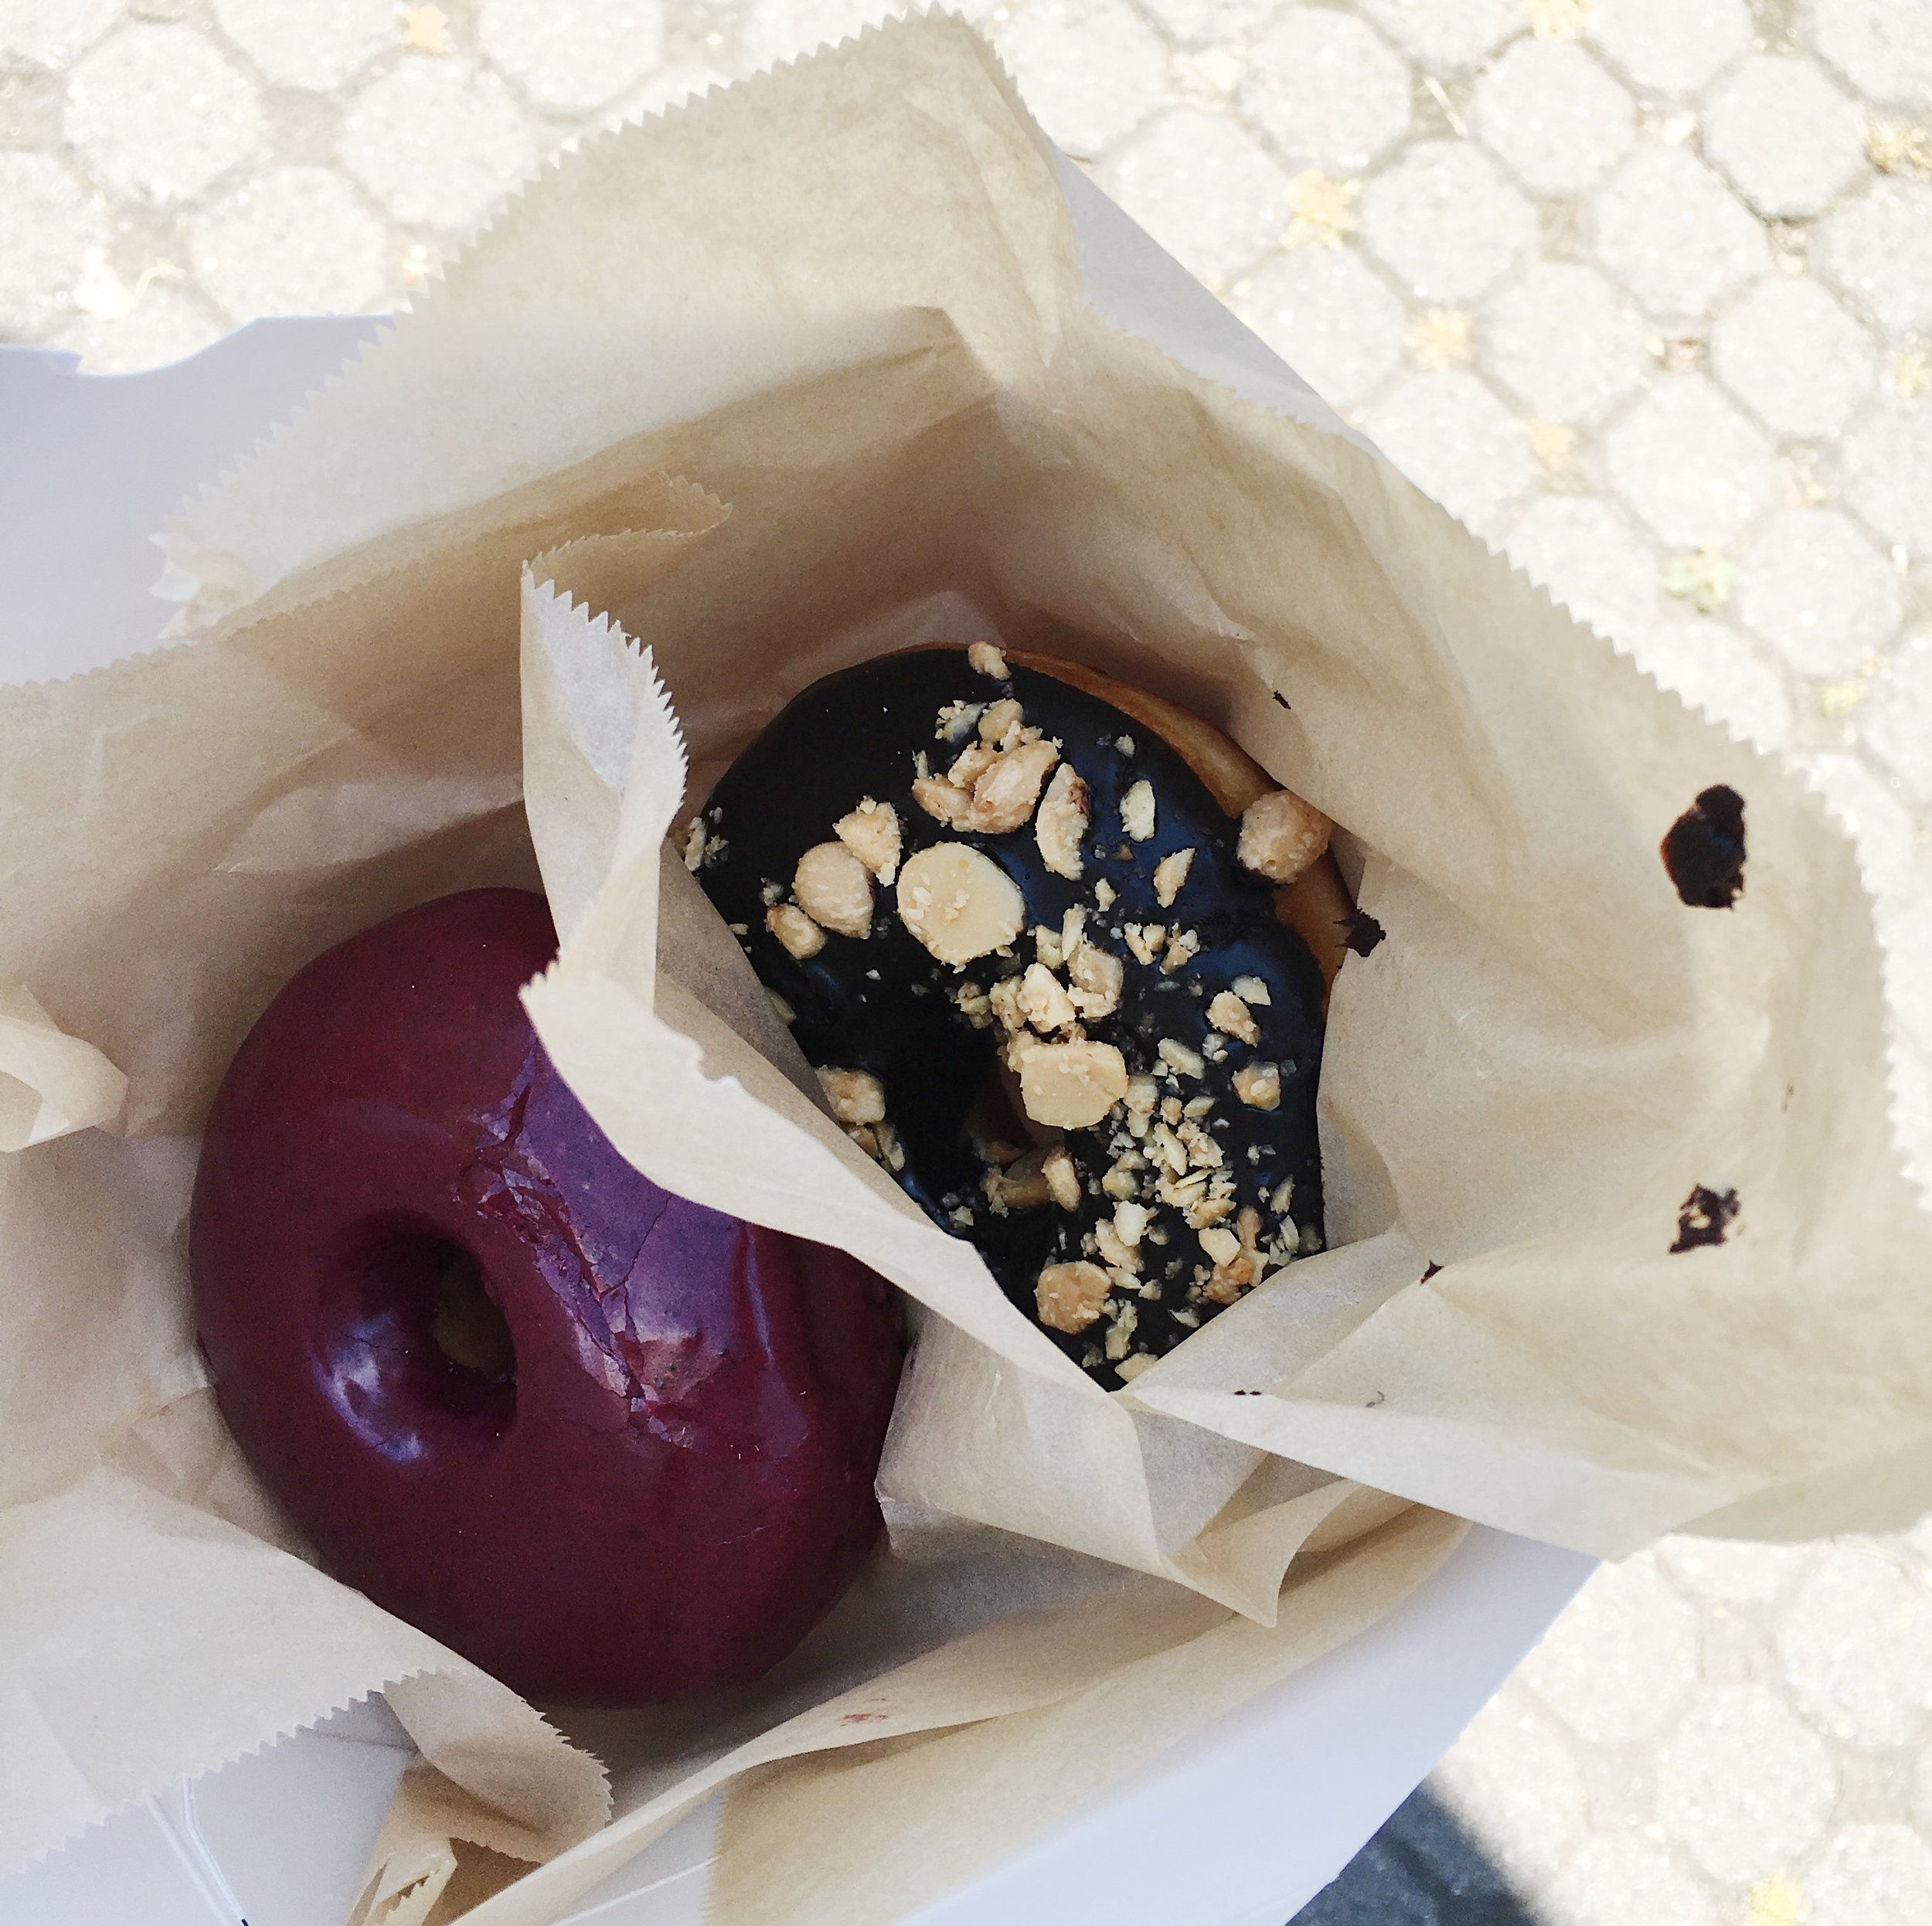 Blueberry bourbon basil and chocolate almond ganache donuts from Blue Star.